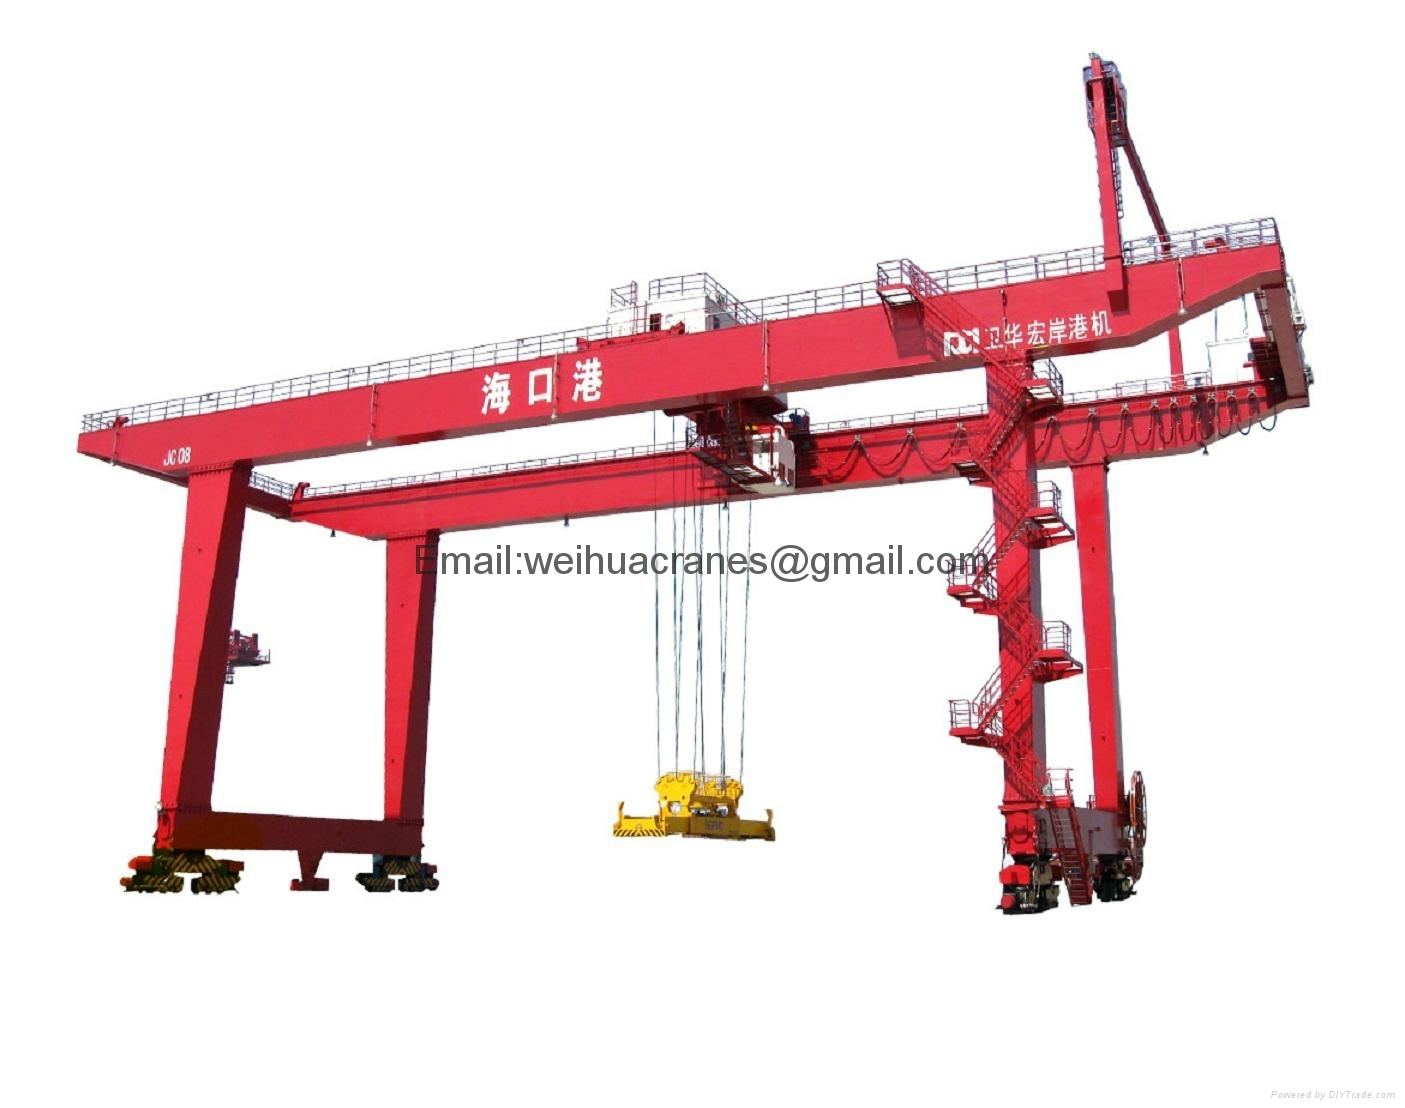 Rail-Mounted-Gantry-cranes